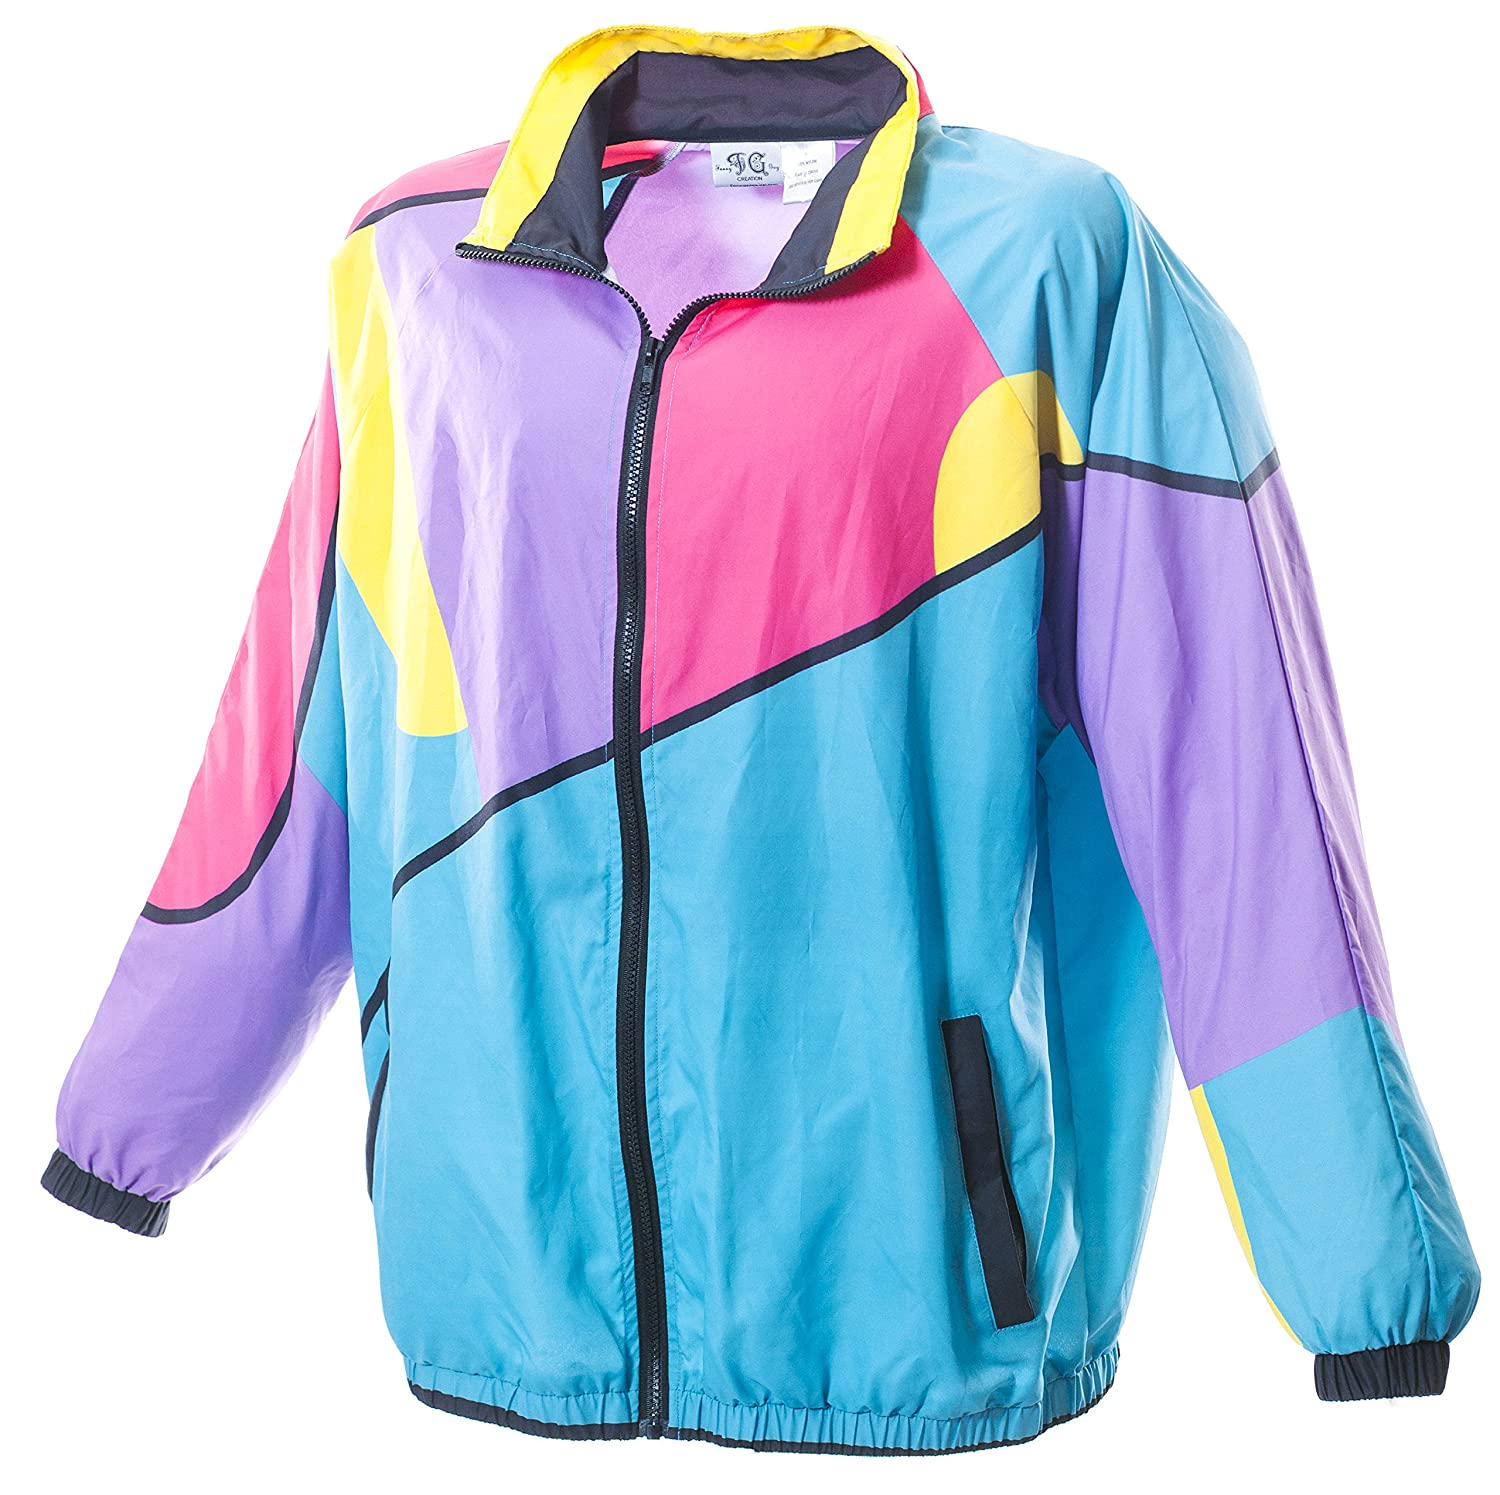 70s Jackets, Furs, Vests, Ponchos Funny Guy Mugs 80s & 90s Retro Neon Windbreakers $49.99 AT vintagedancer.com